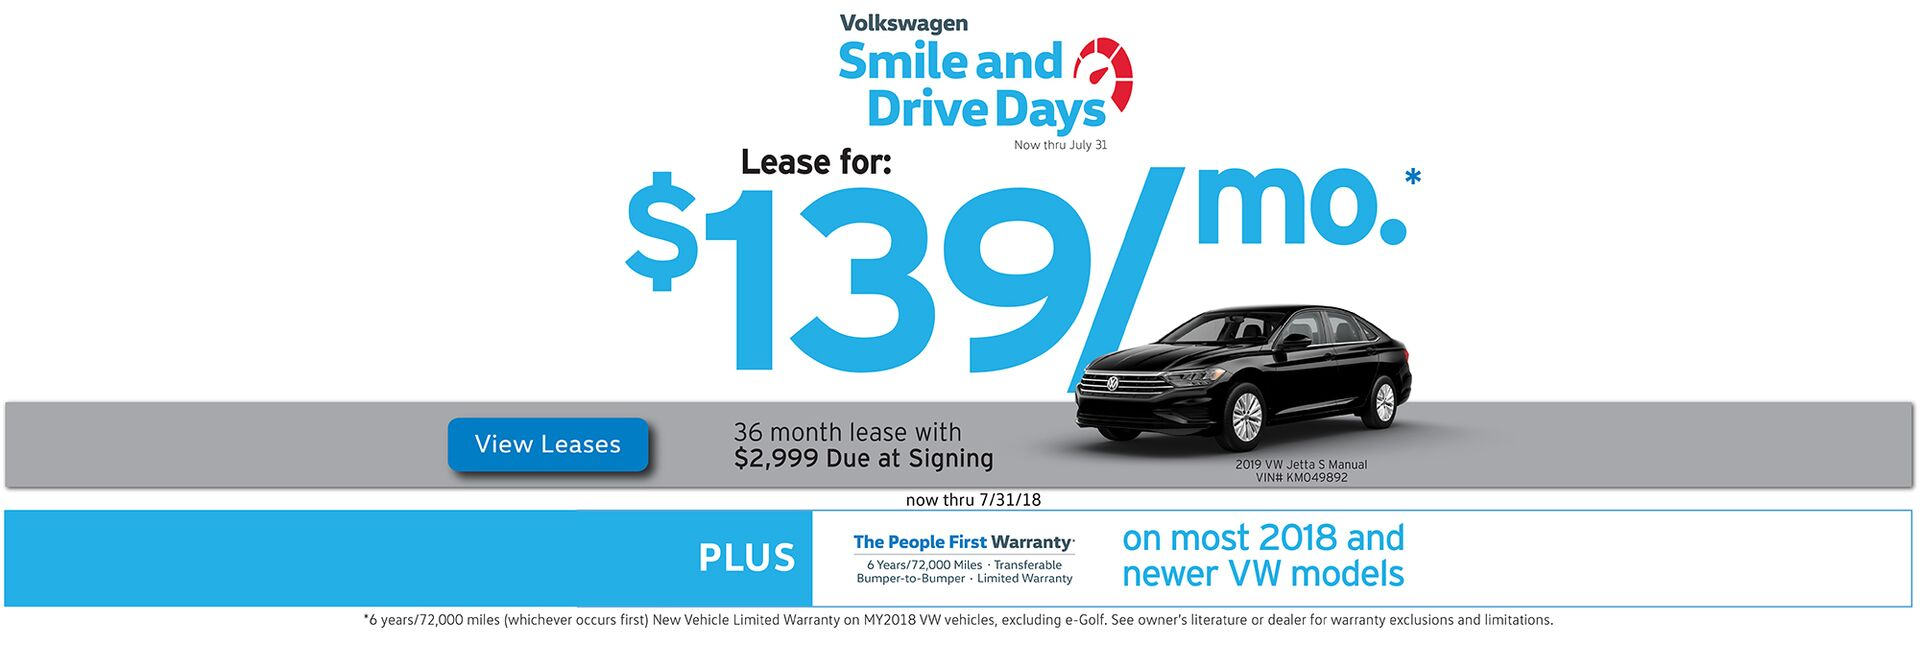 July Smile and Drive Days leases starting at $139/mo.